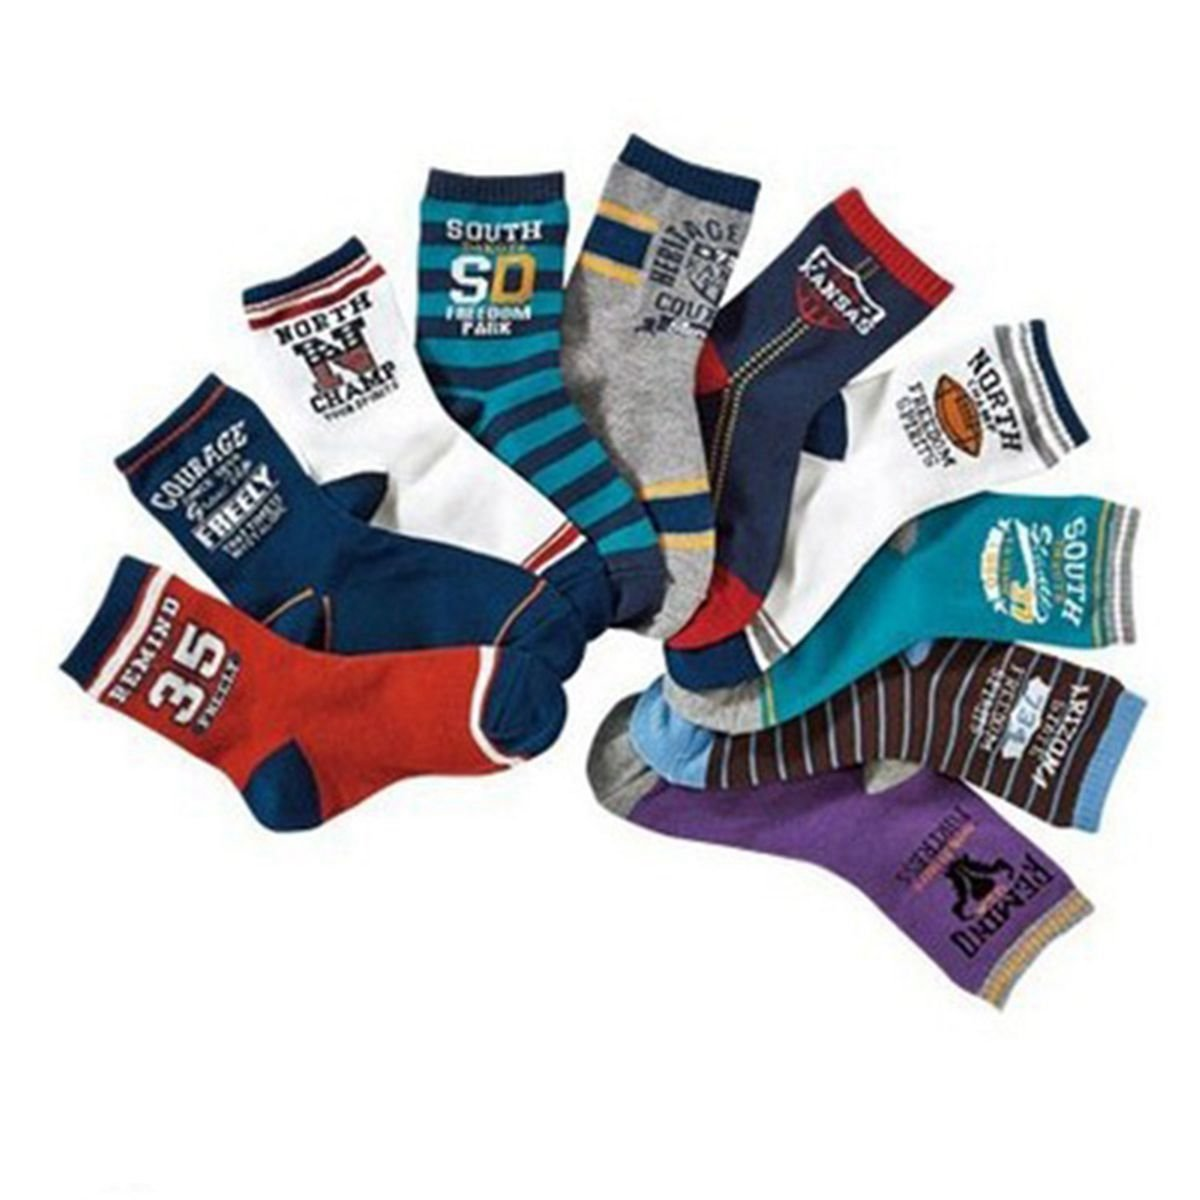 Boys Short Socks Fashion Rugby Cotton Basic Crew Kids Socks 10 Pair Pack